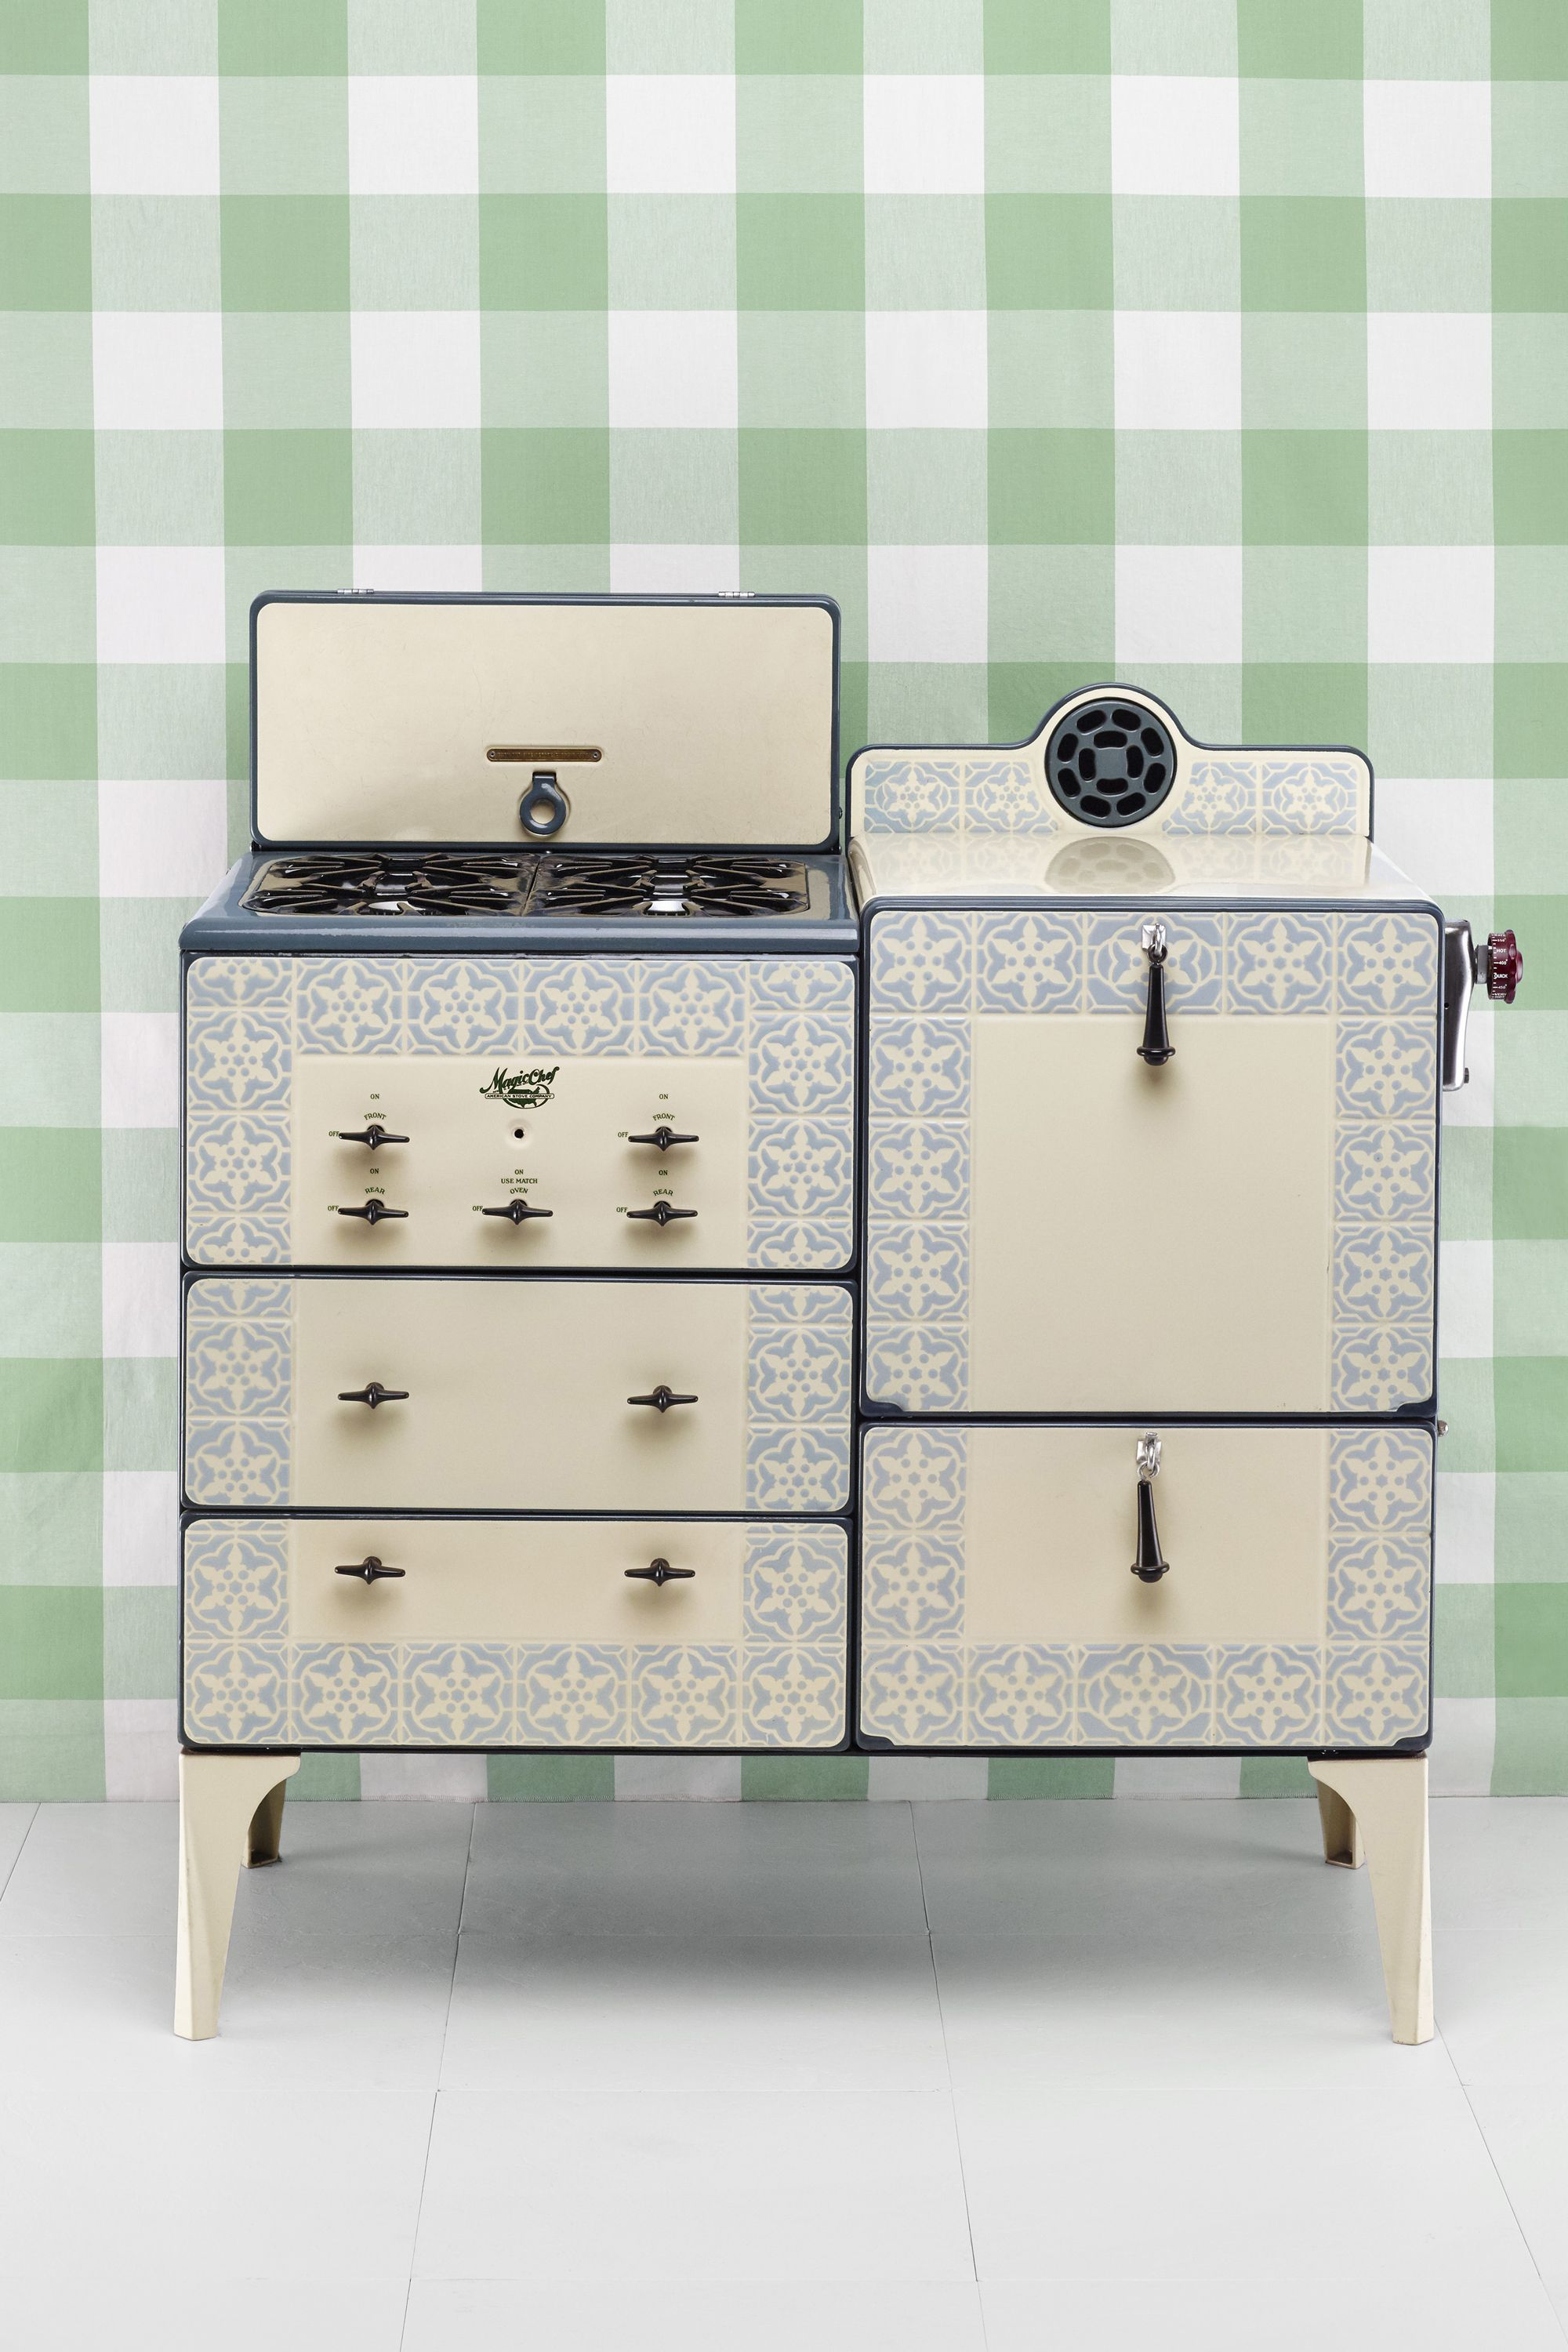 Antique Stoves - Vintage Stoves